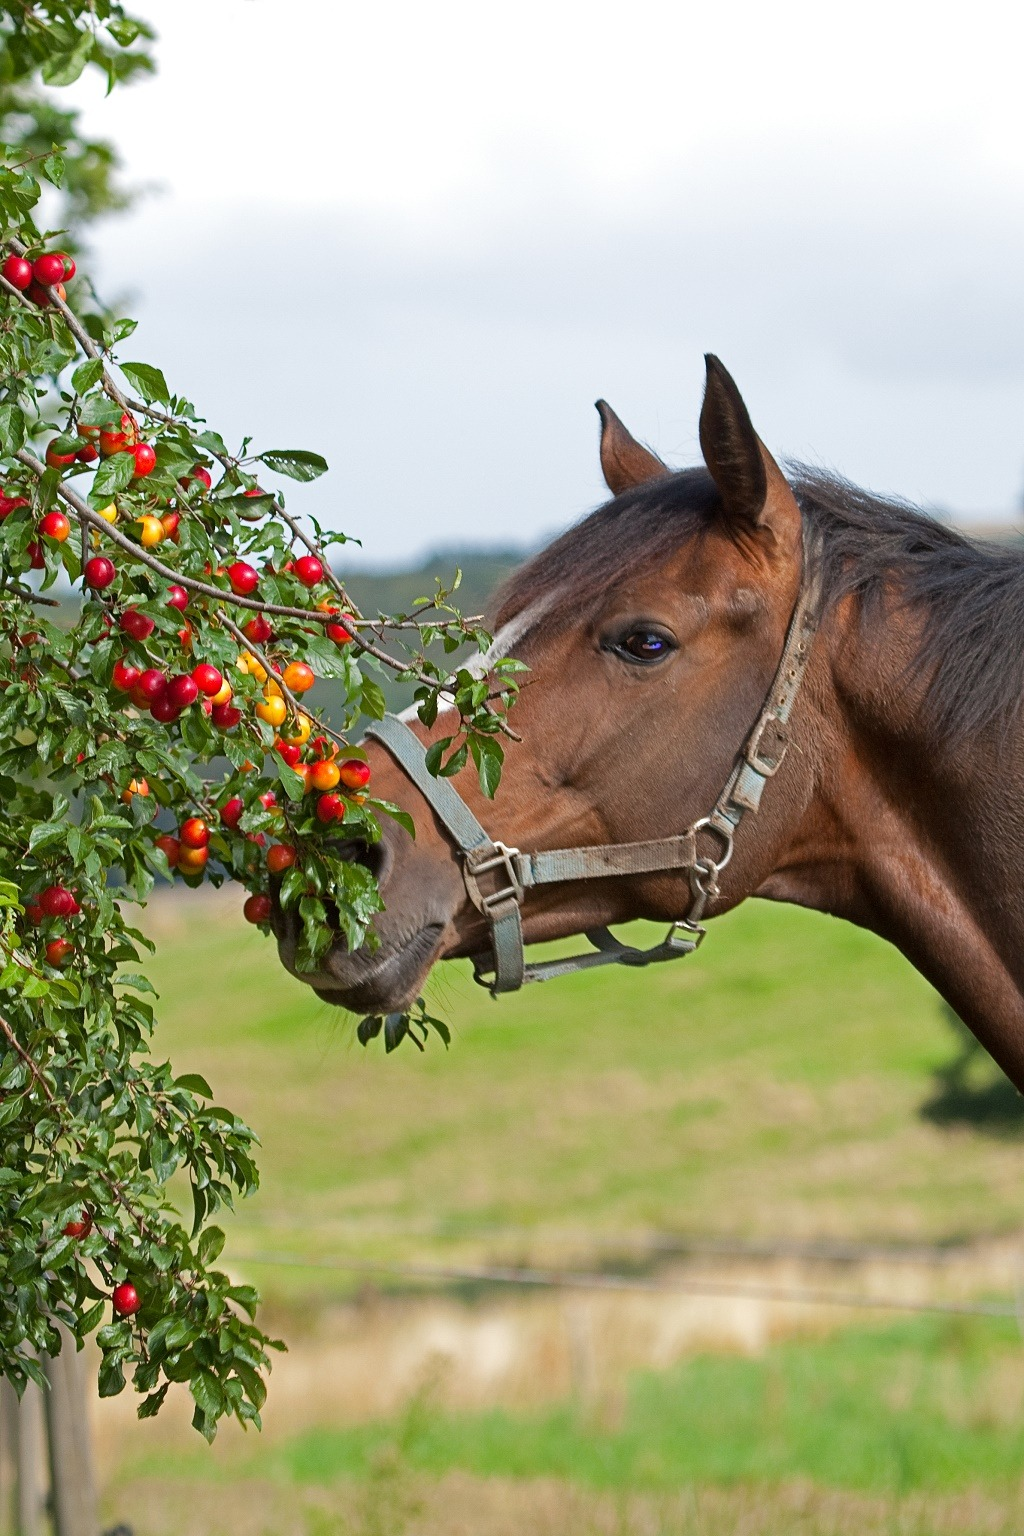 horse eating cherries